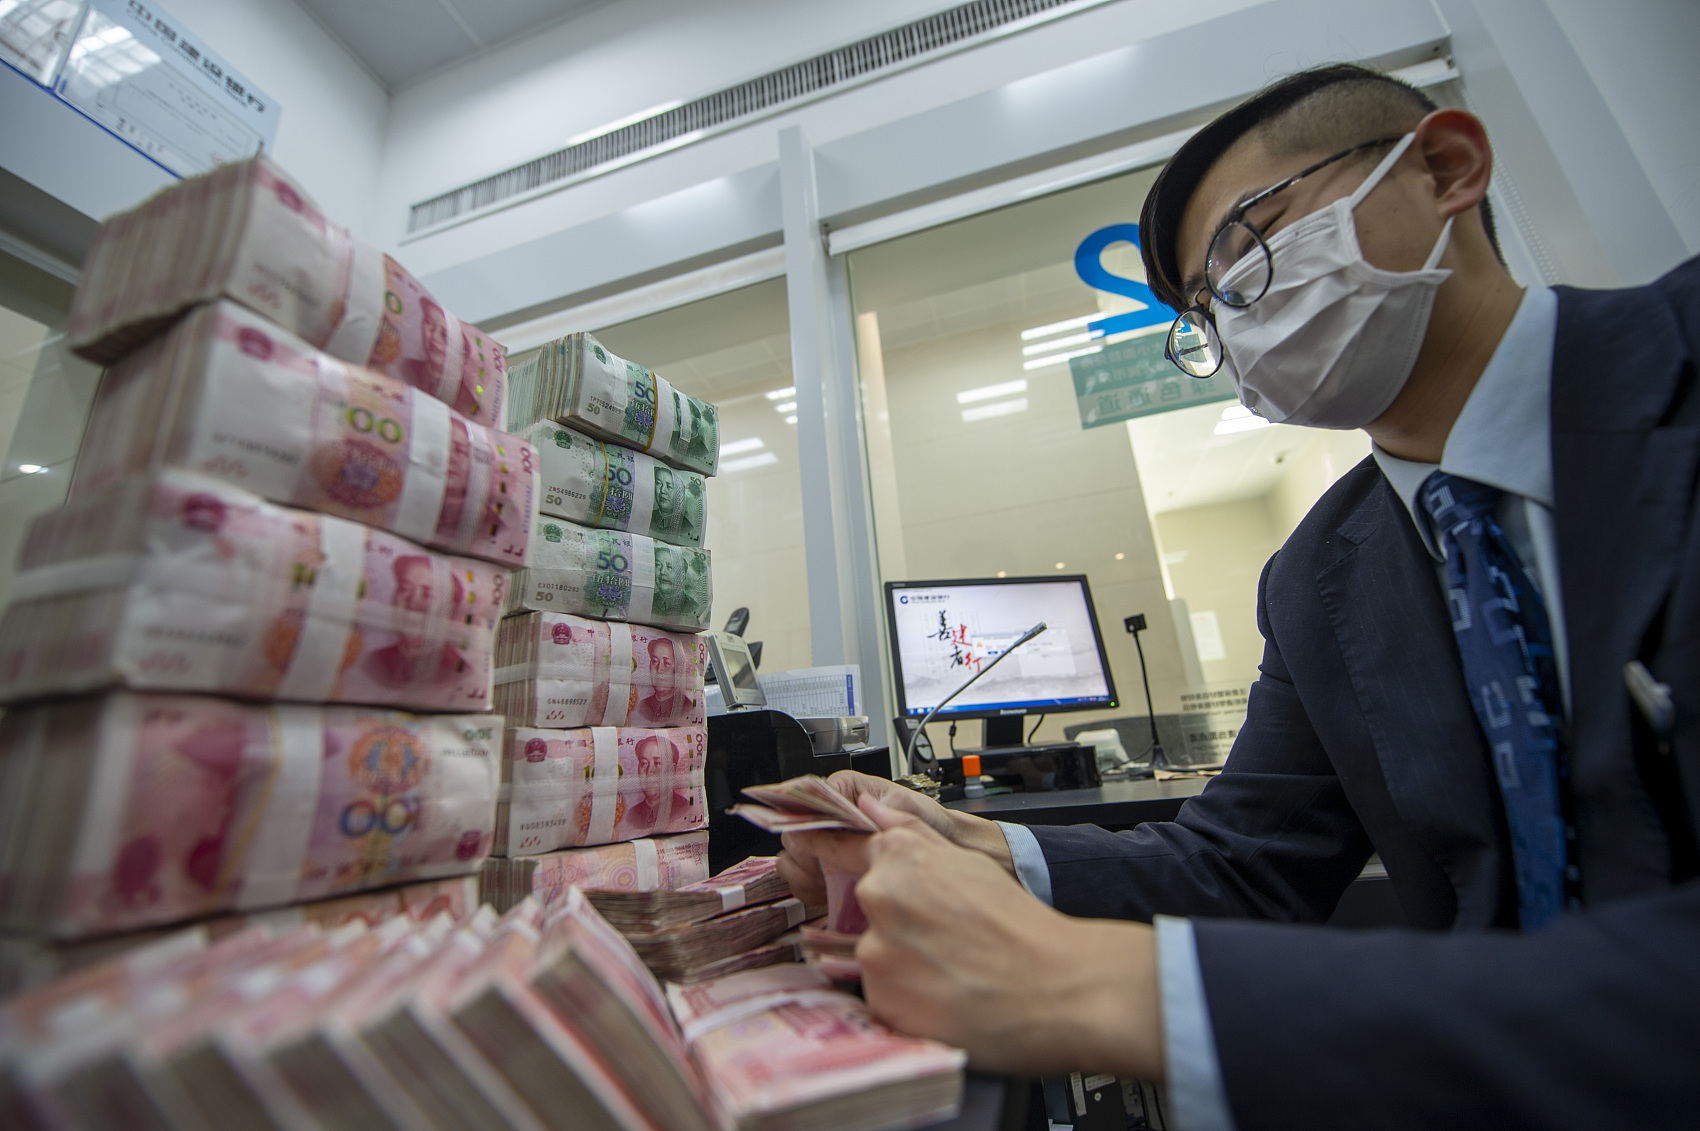 China central bank says no foundation for sustained inflation, deflation